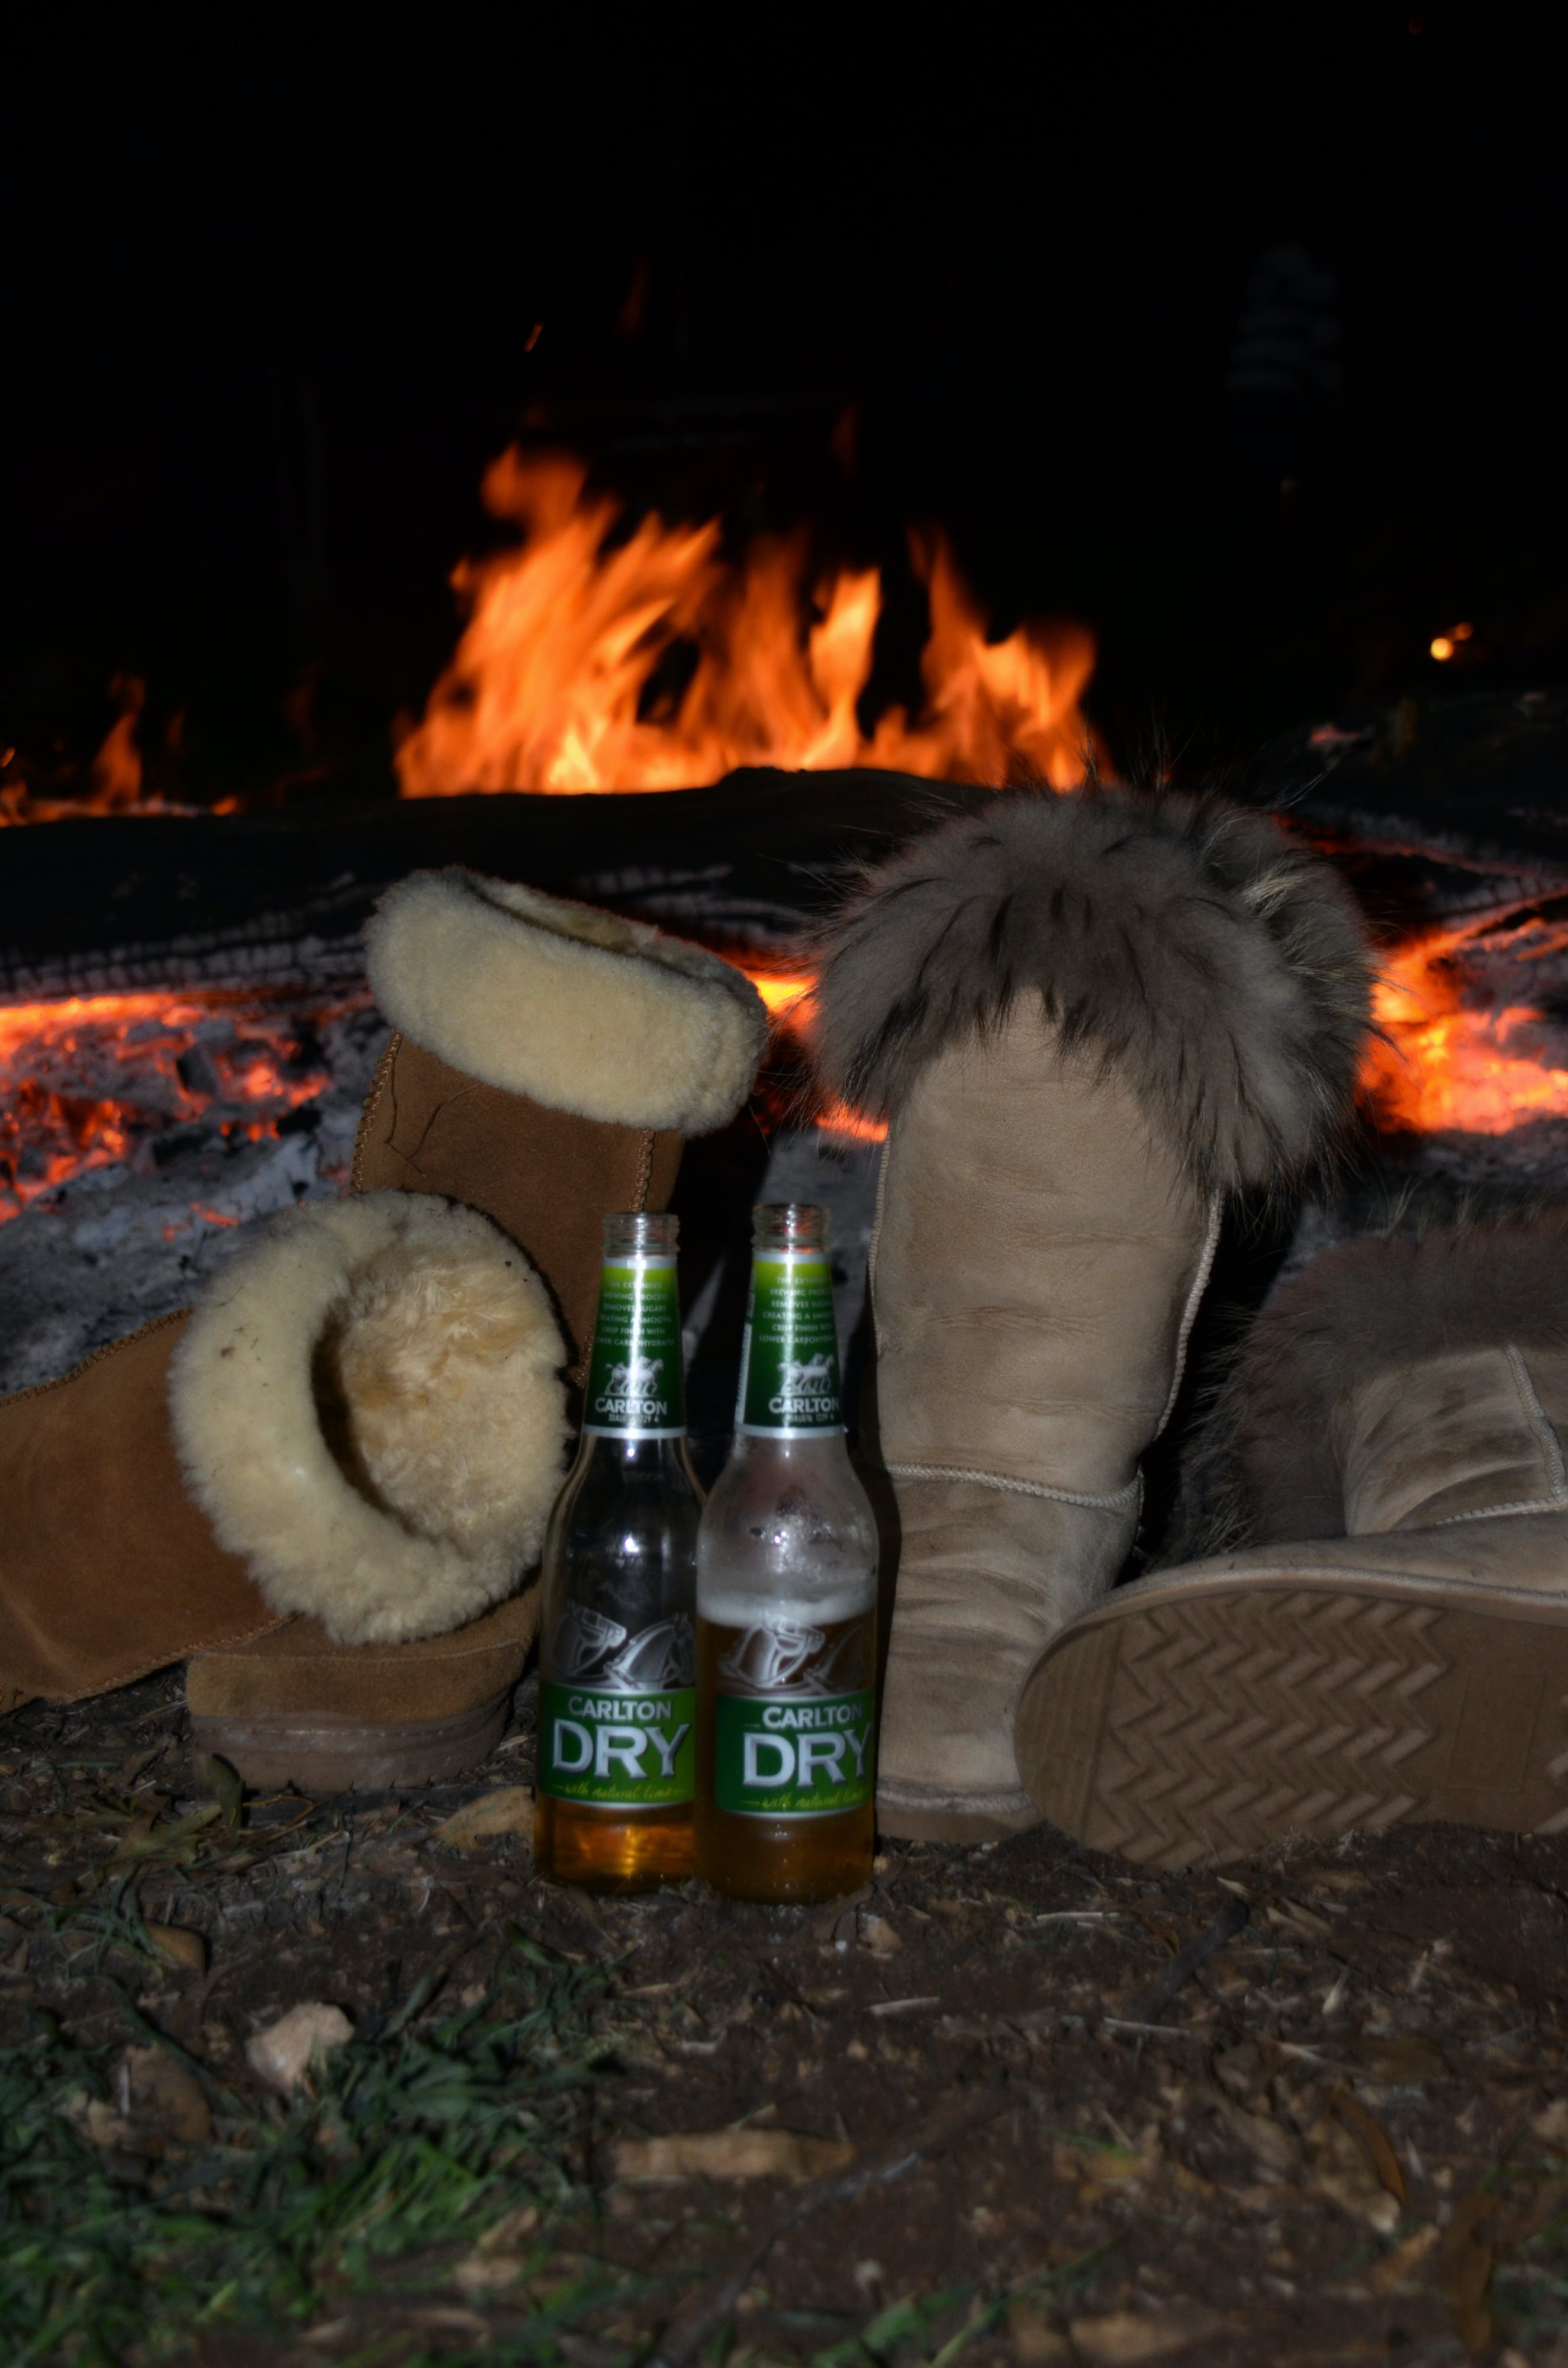 Free stock photo of winter, beer, fire, uggboots